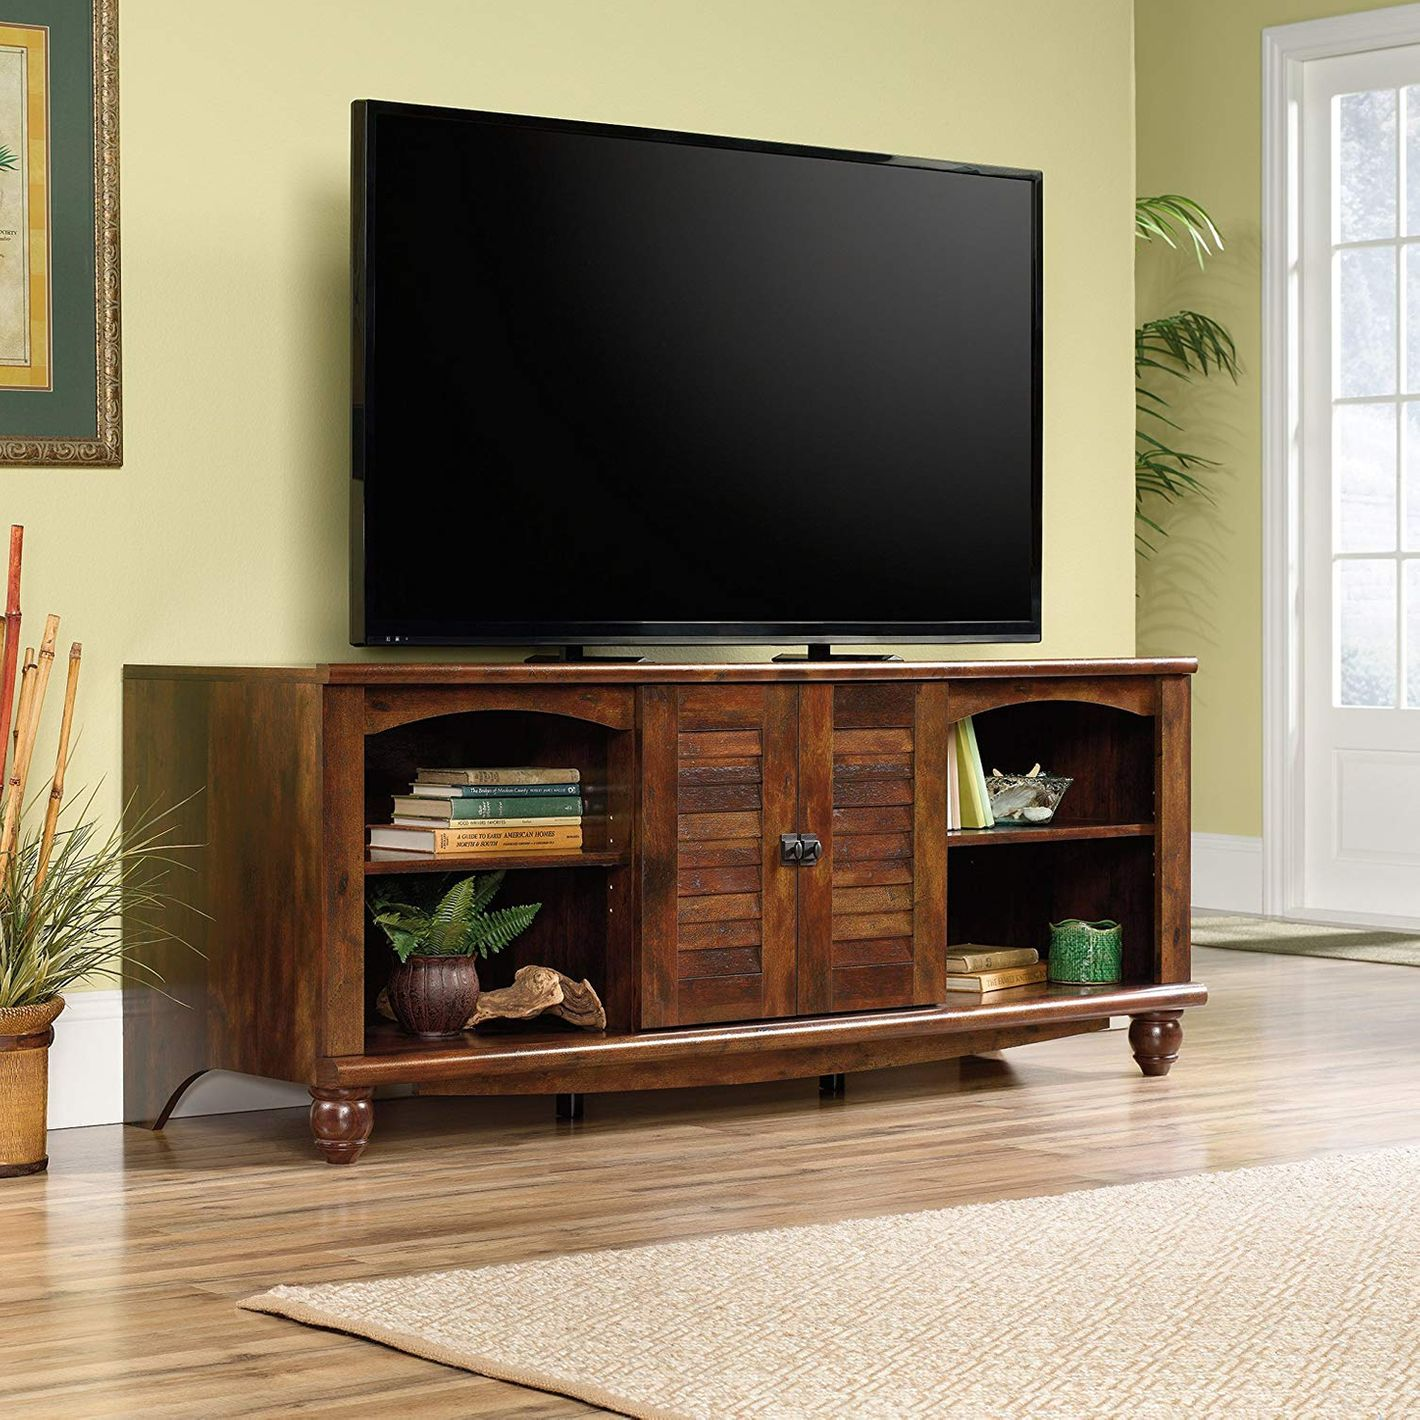 Sauder Harbor View Entertainment Credenza For TV's up to 60""